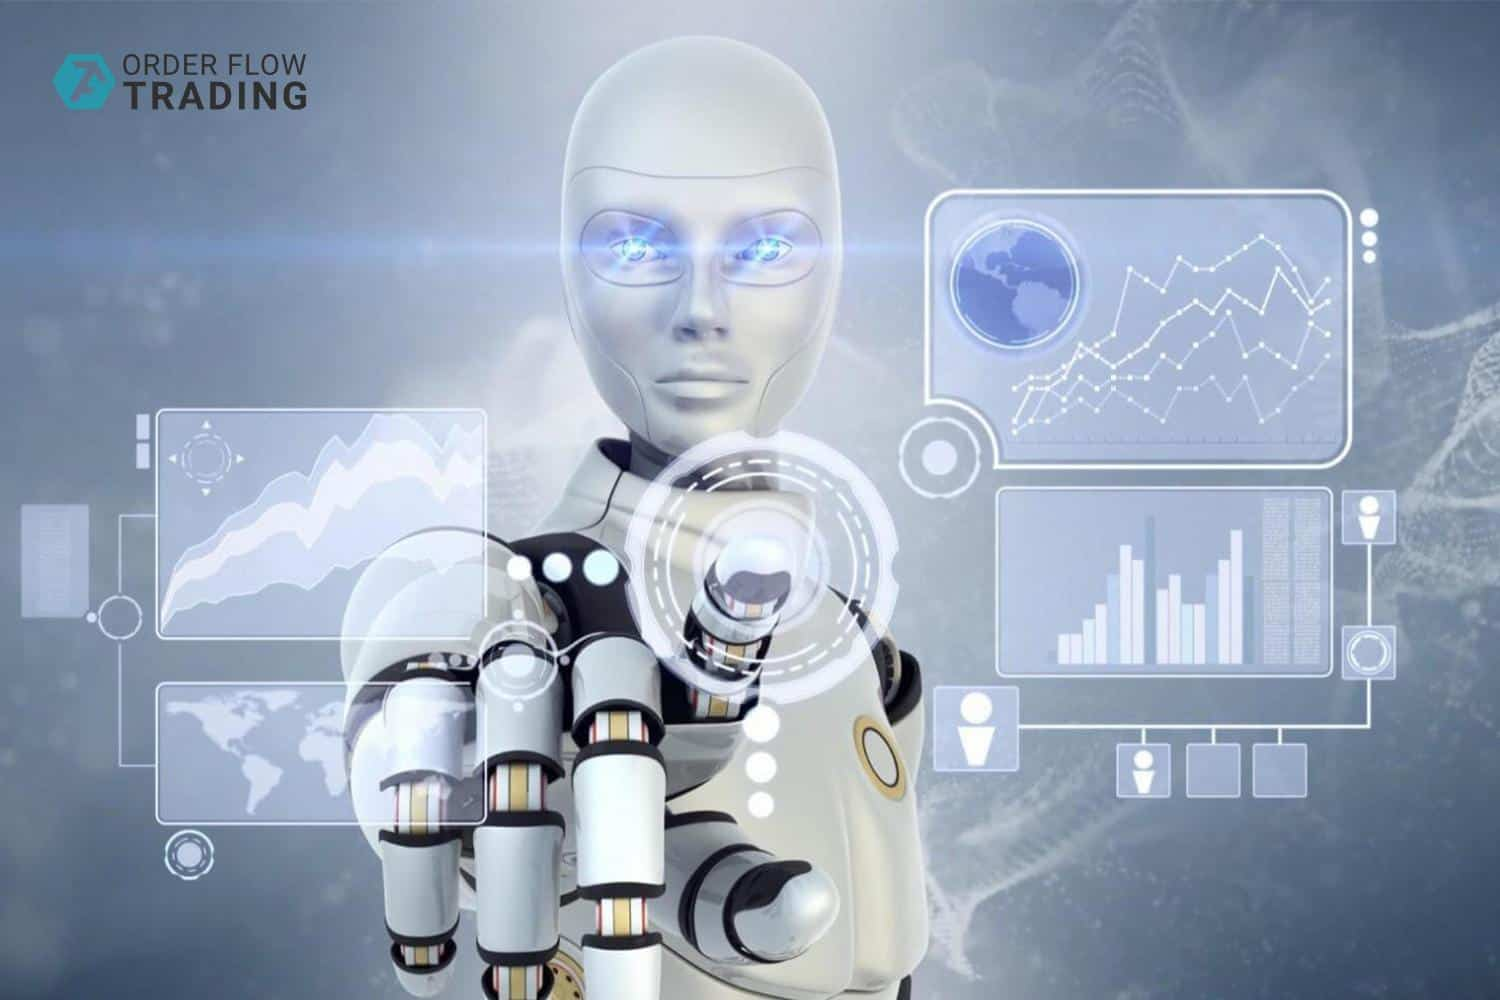 How did the algorithmic trading influence the futures market? Part 2